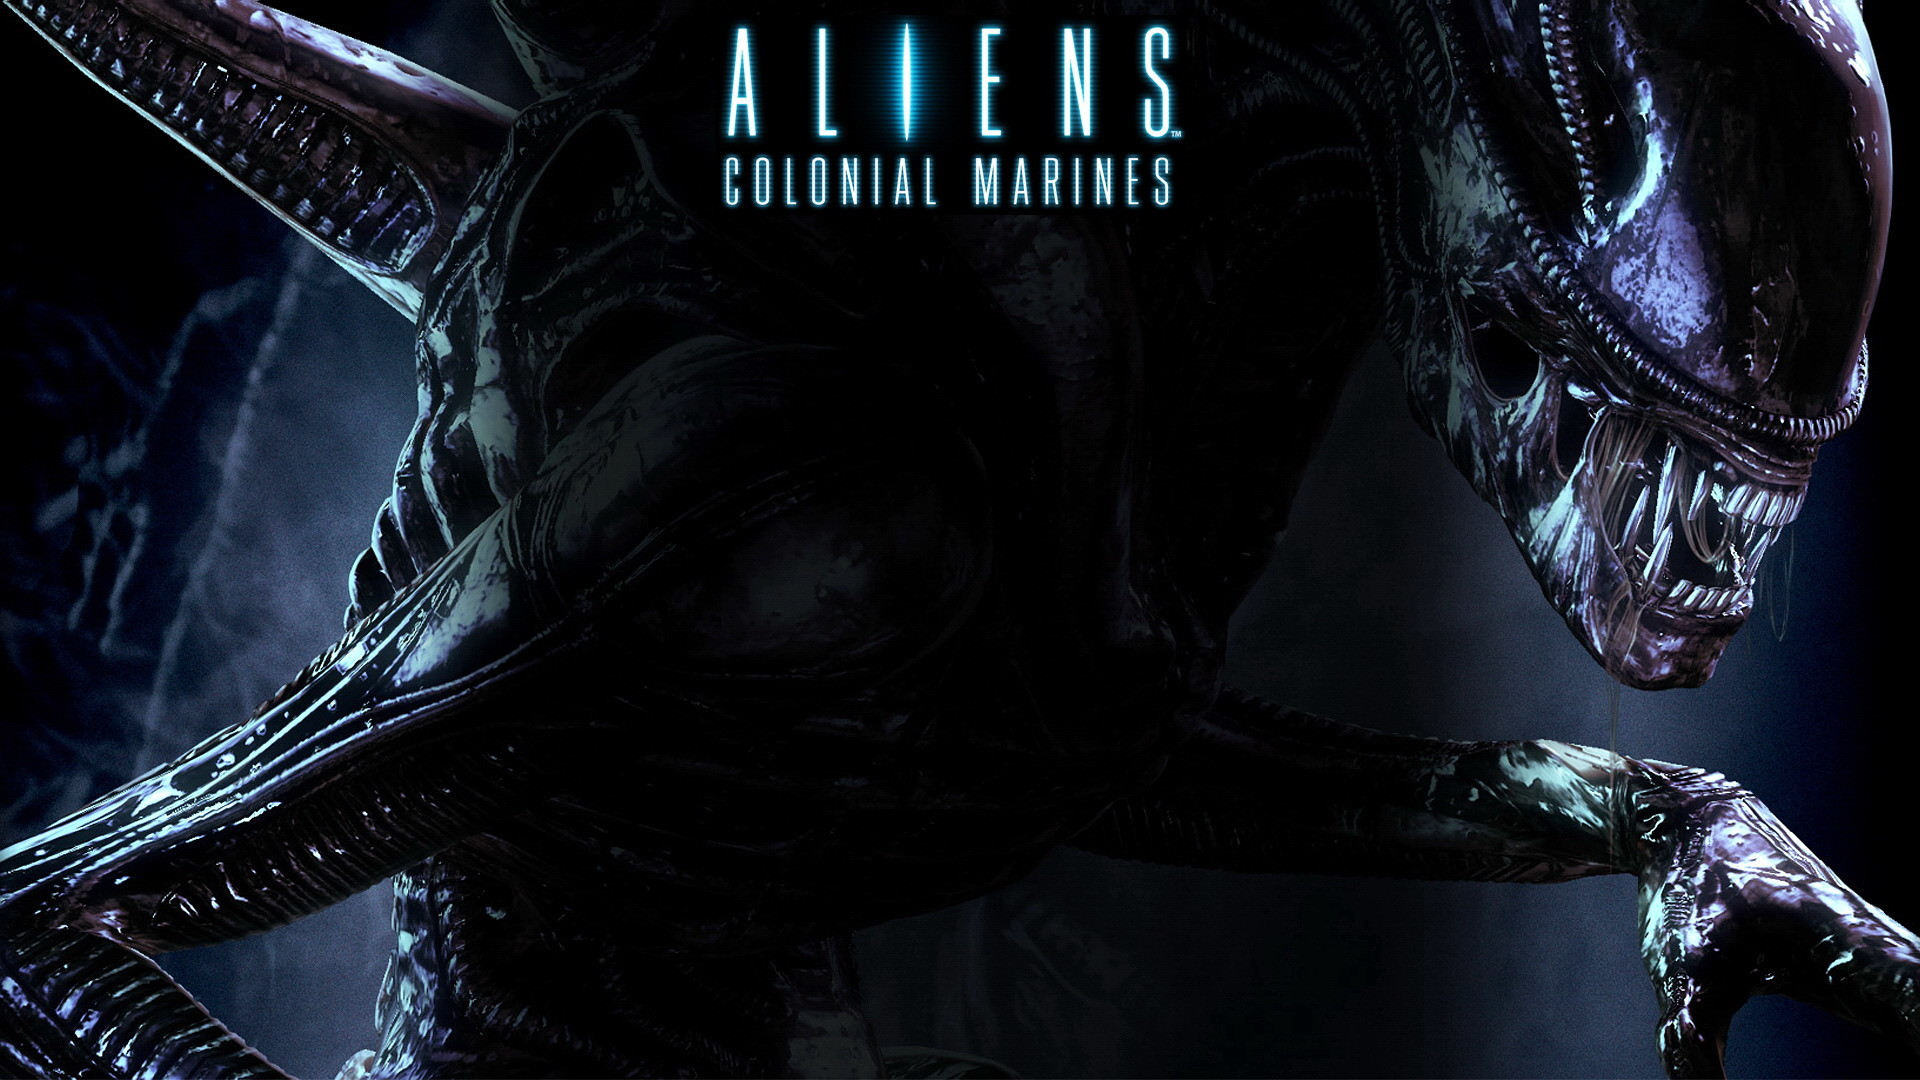 1920x1080 Aliens Colonial Marines Wallpaper Mobile